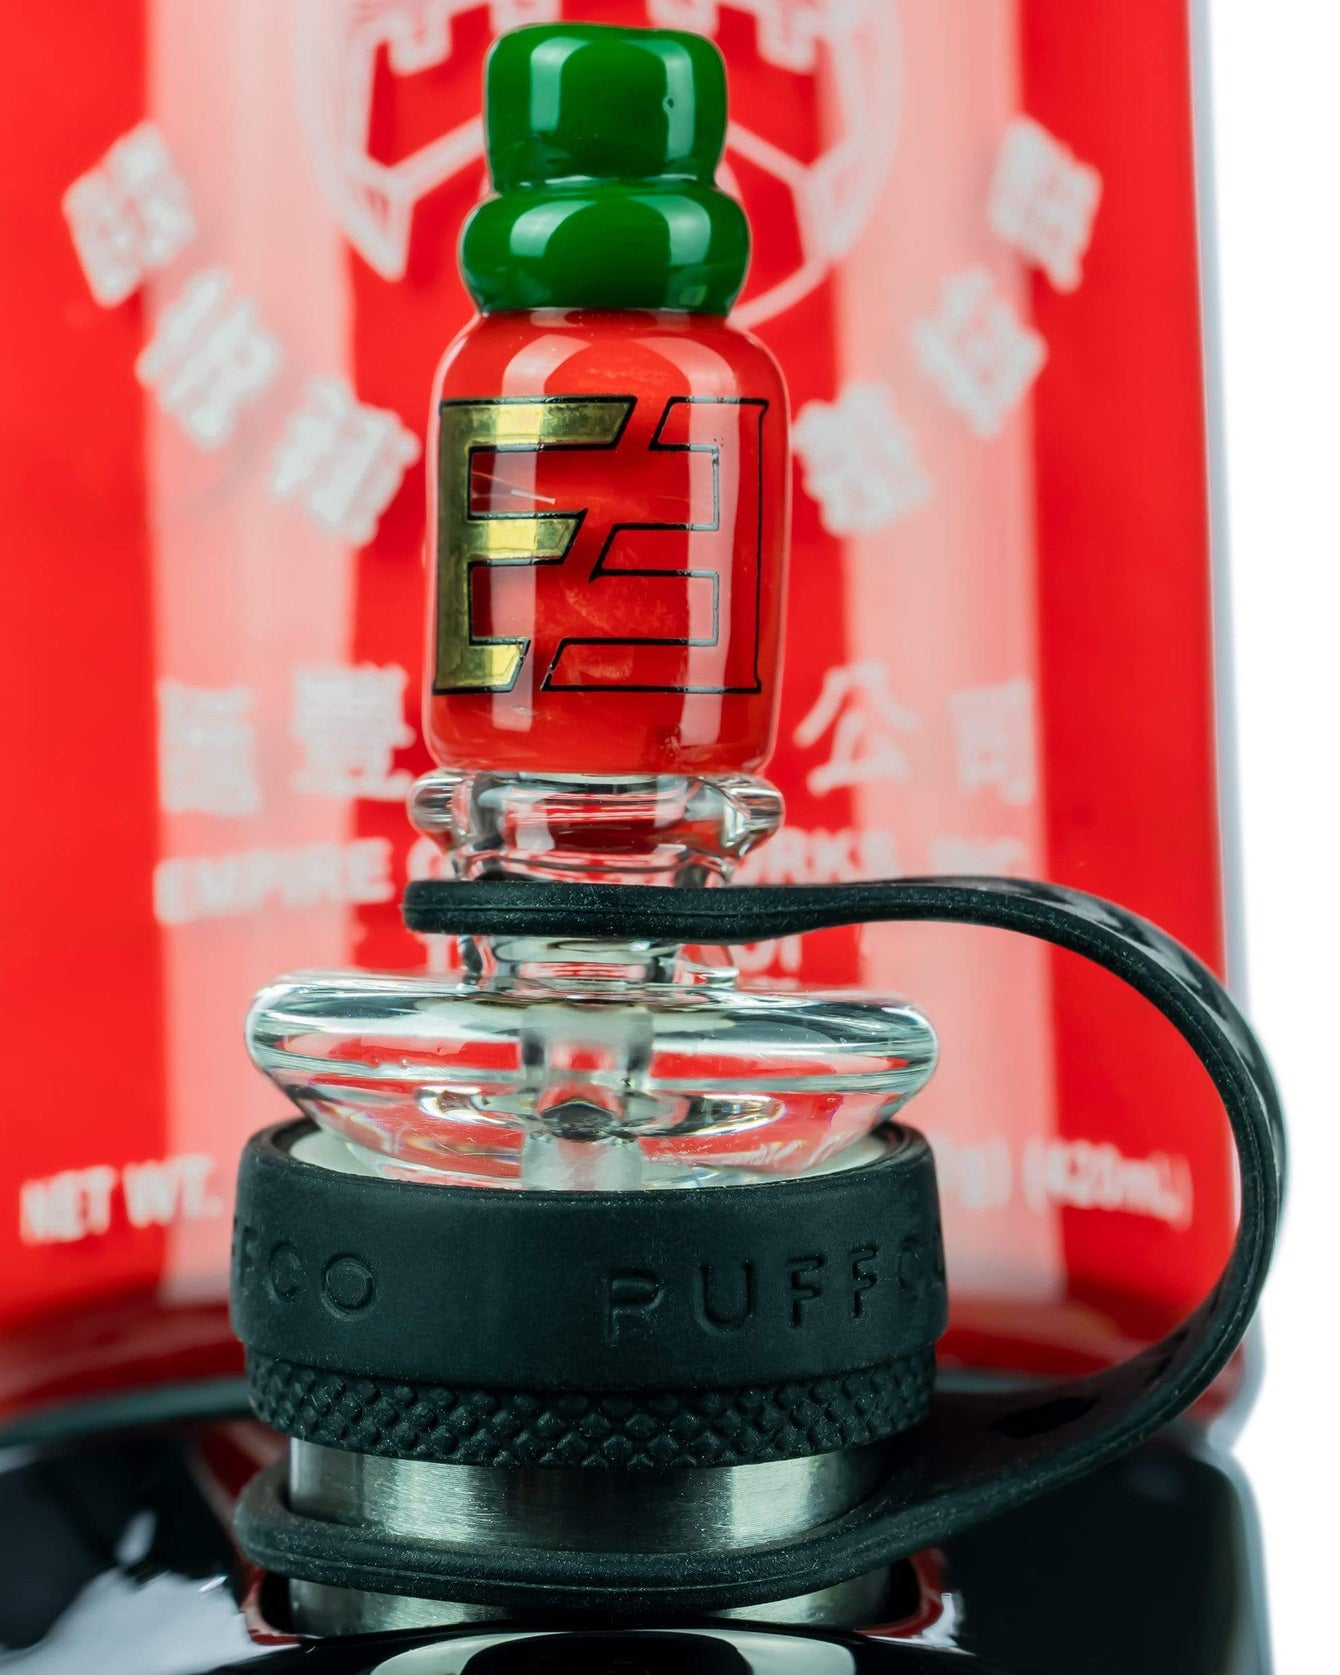 Sriracha Themed Carb Cap for Puffco Peak